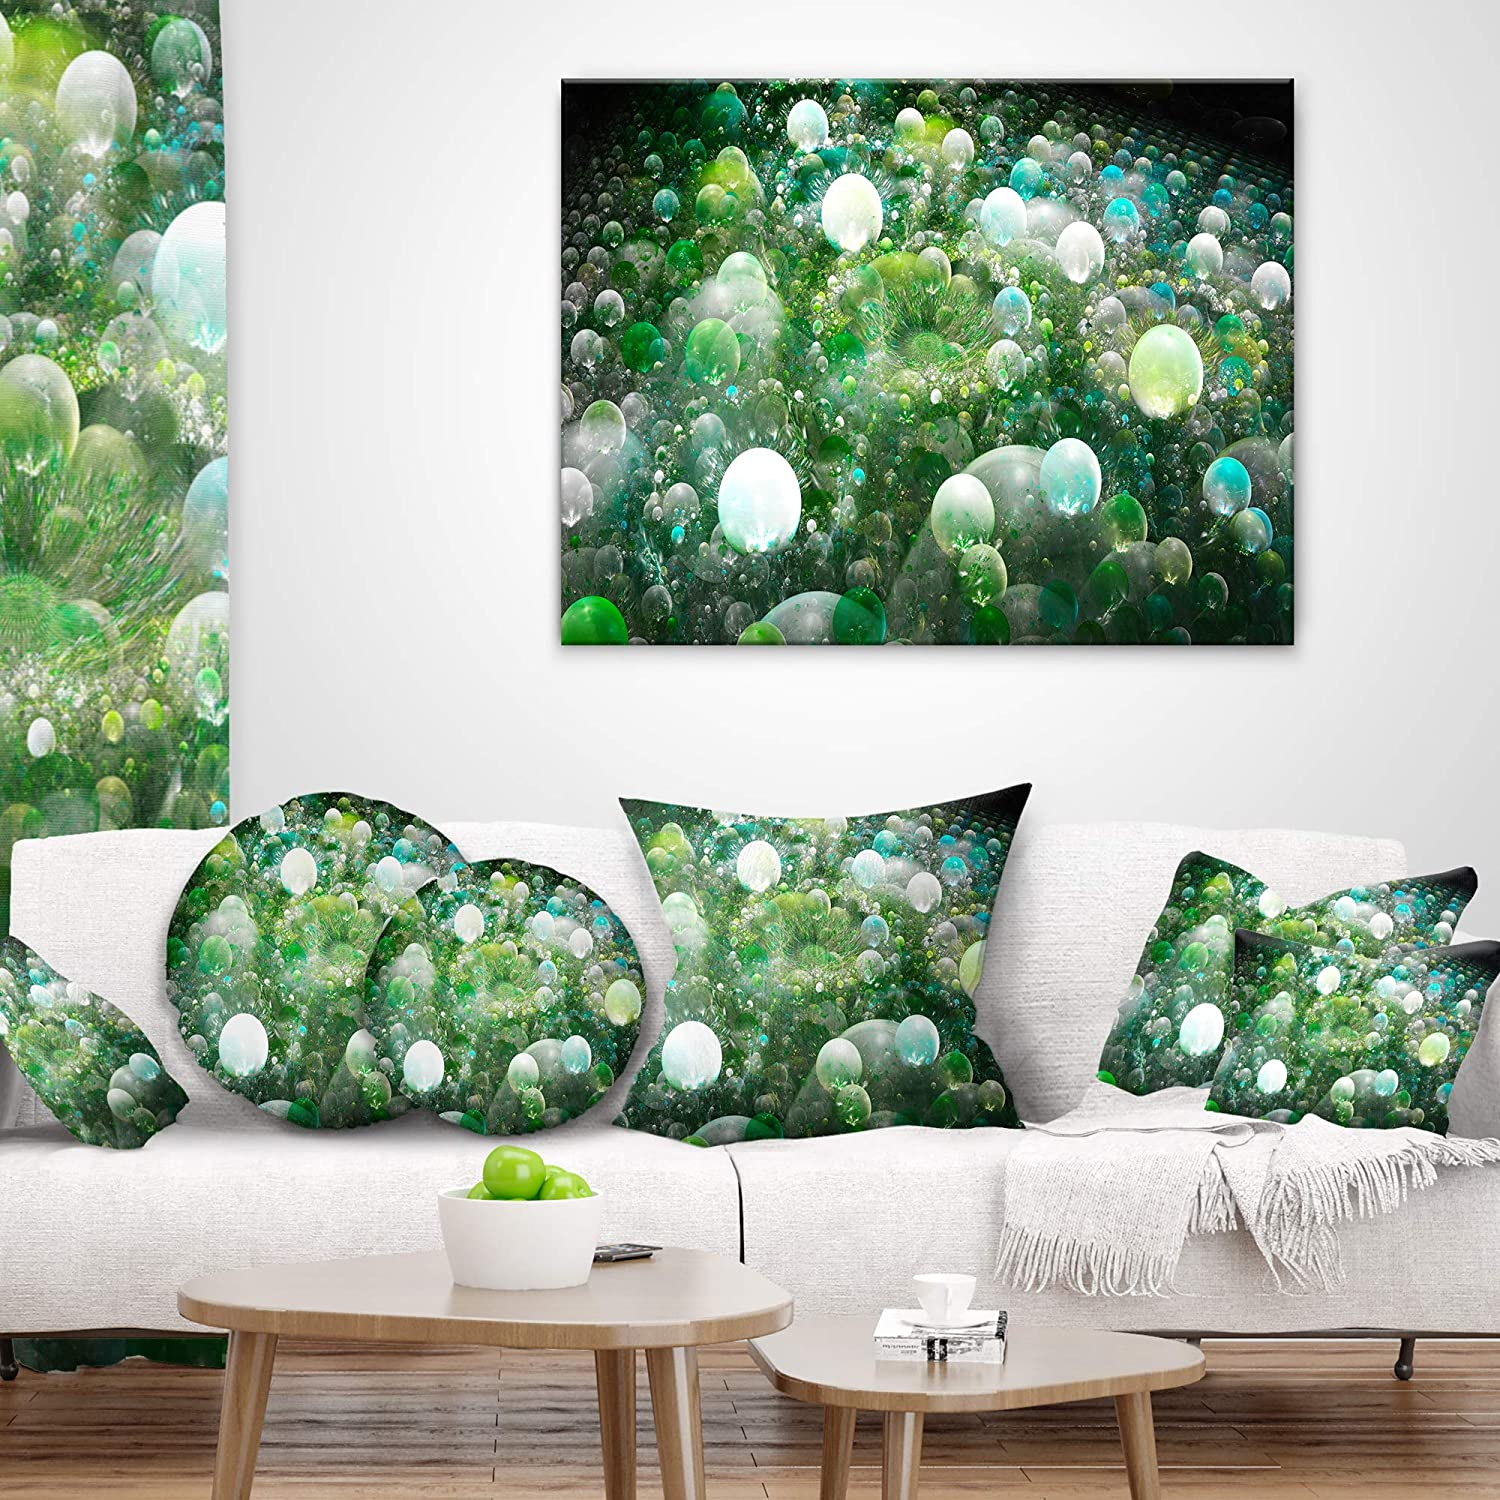 x 20 in in Sofa Throw Pillow 12 in Designart CU16294-12-20 Green Fractal Molecule Pattern Abstract Lumbar Cushion Cover for Living Room